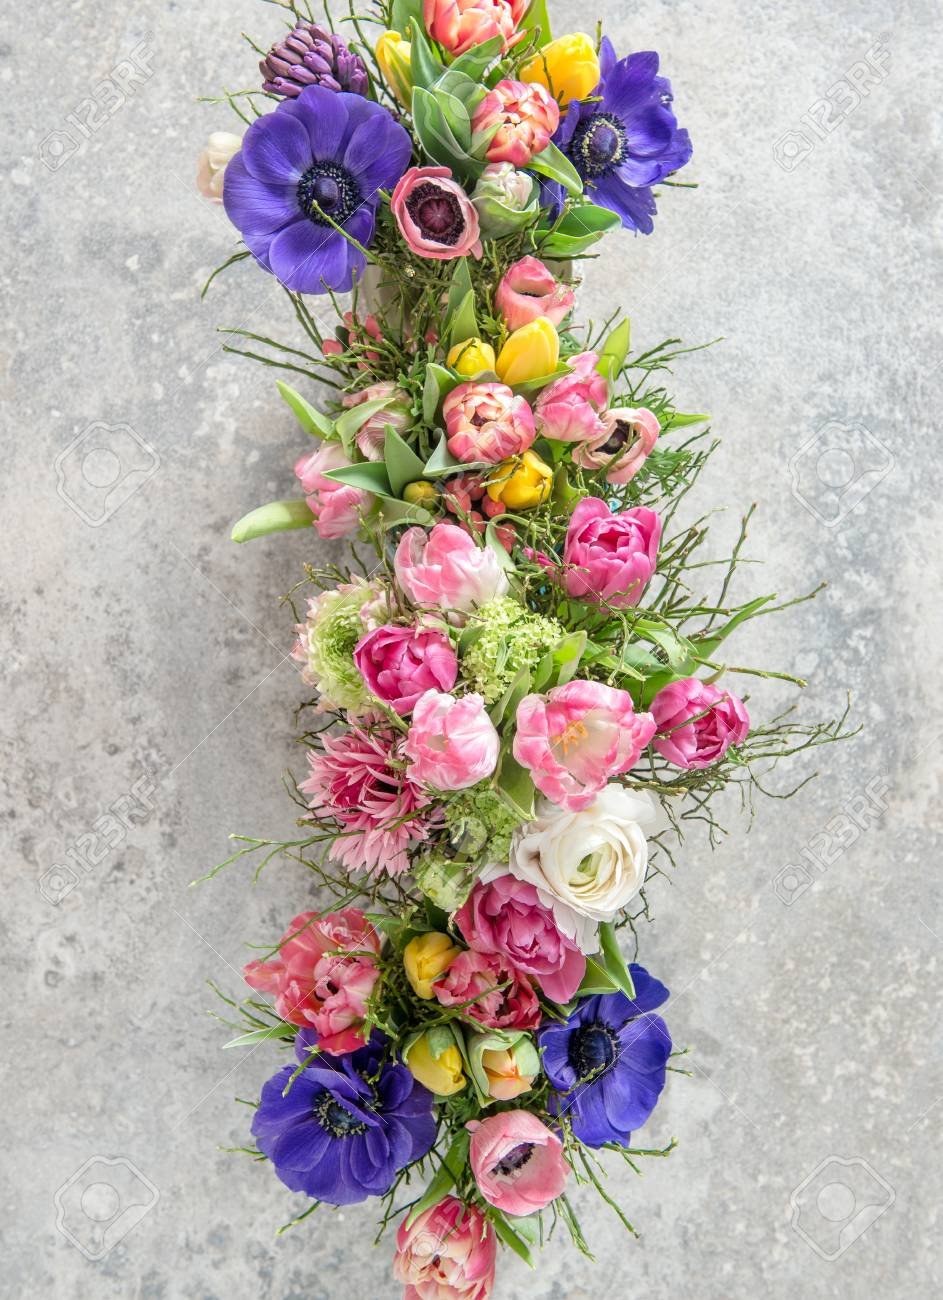 Spring Flowers Tulip Ranunculus Hyacinth Anemone Beautiful Stock Photo Picture And Royalty Free Image Image 97972993